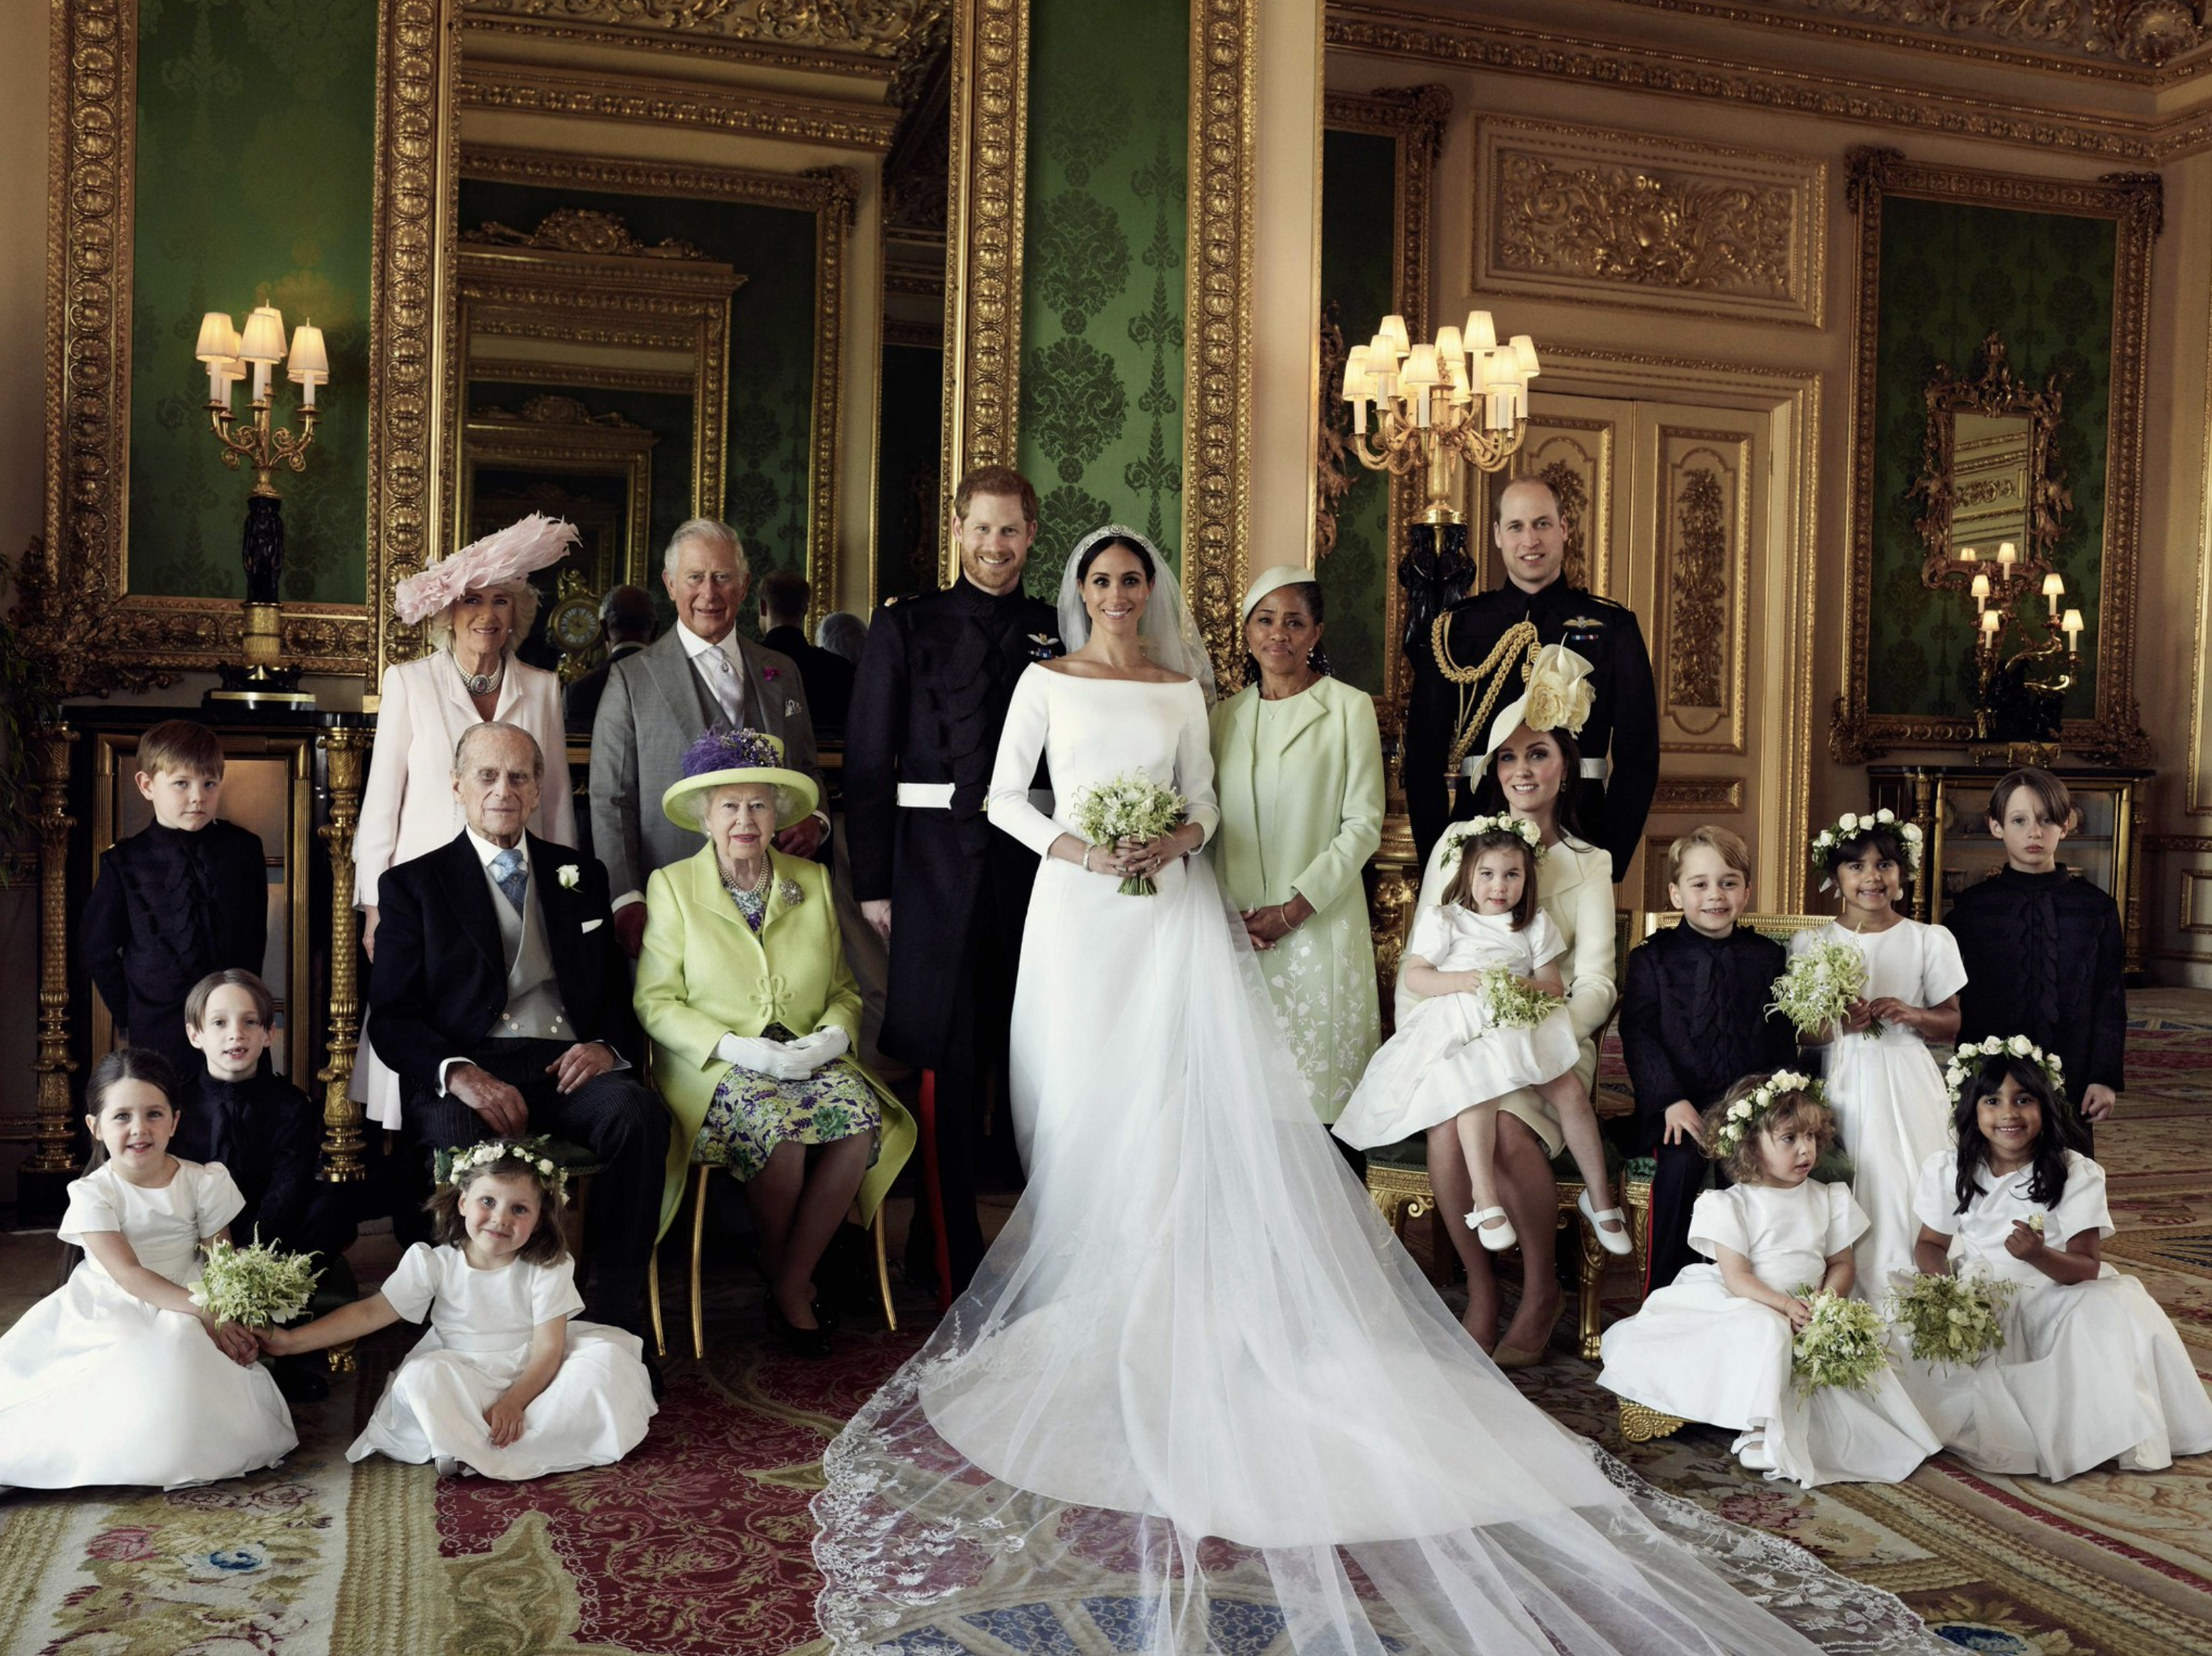 """The Duke and Duchess of Sussex have released three official photographs taken on their wedding day by photographer Alexi Lubomirski. #RoyalWedding""   The Royal Family Twitter account, which shared this official wedding photo of Prince Harry and Meghan Markle with their family members on May 21, 2018"